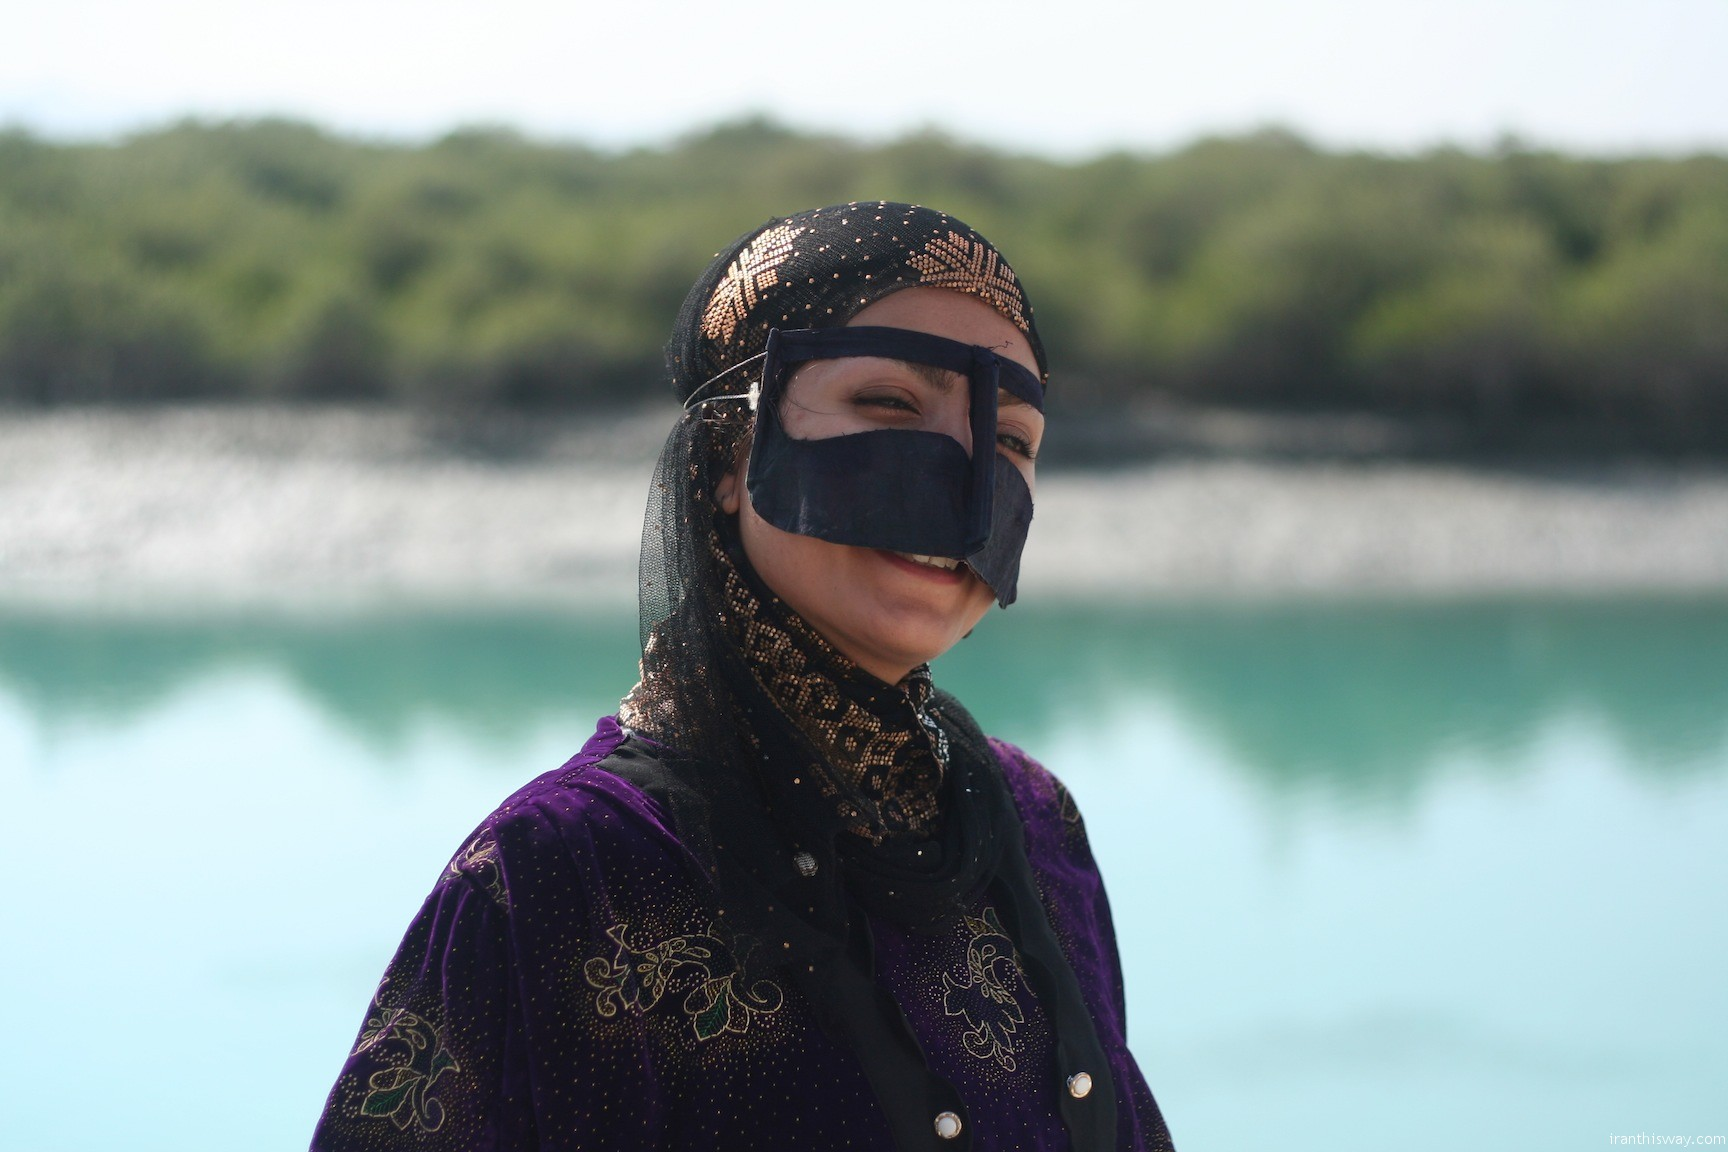 Iranian girl with traditional cover in Qeshm island, Persian Gulf